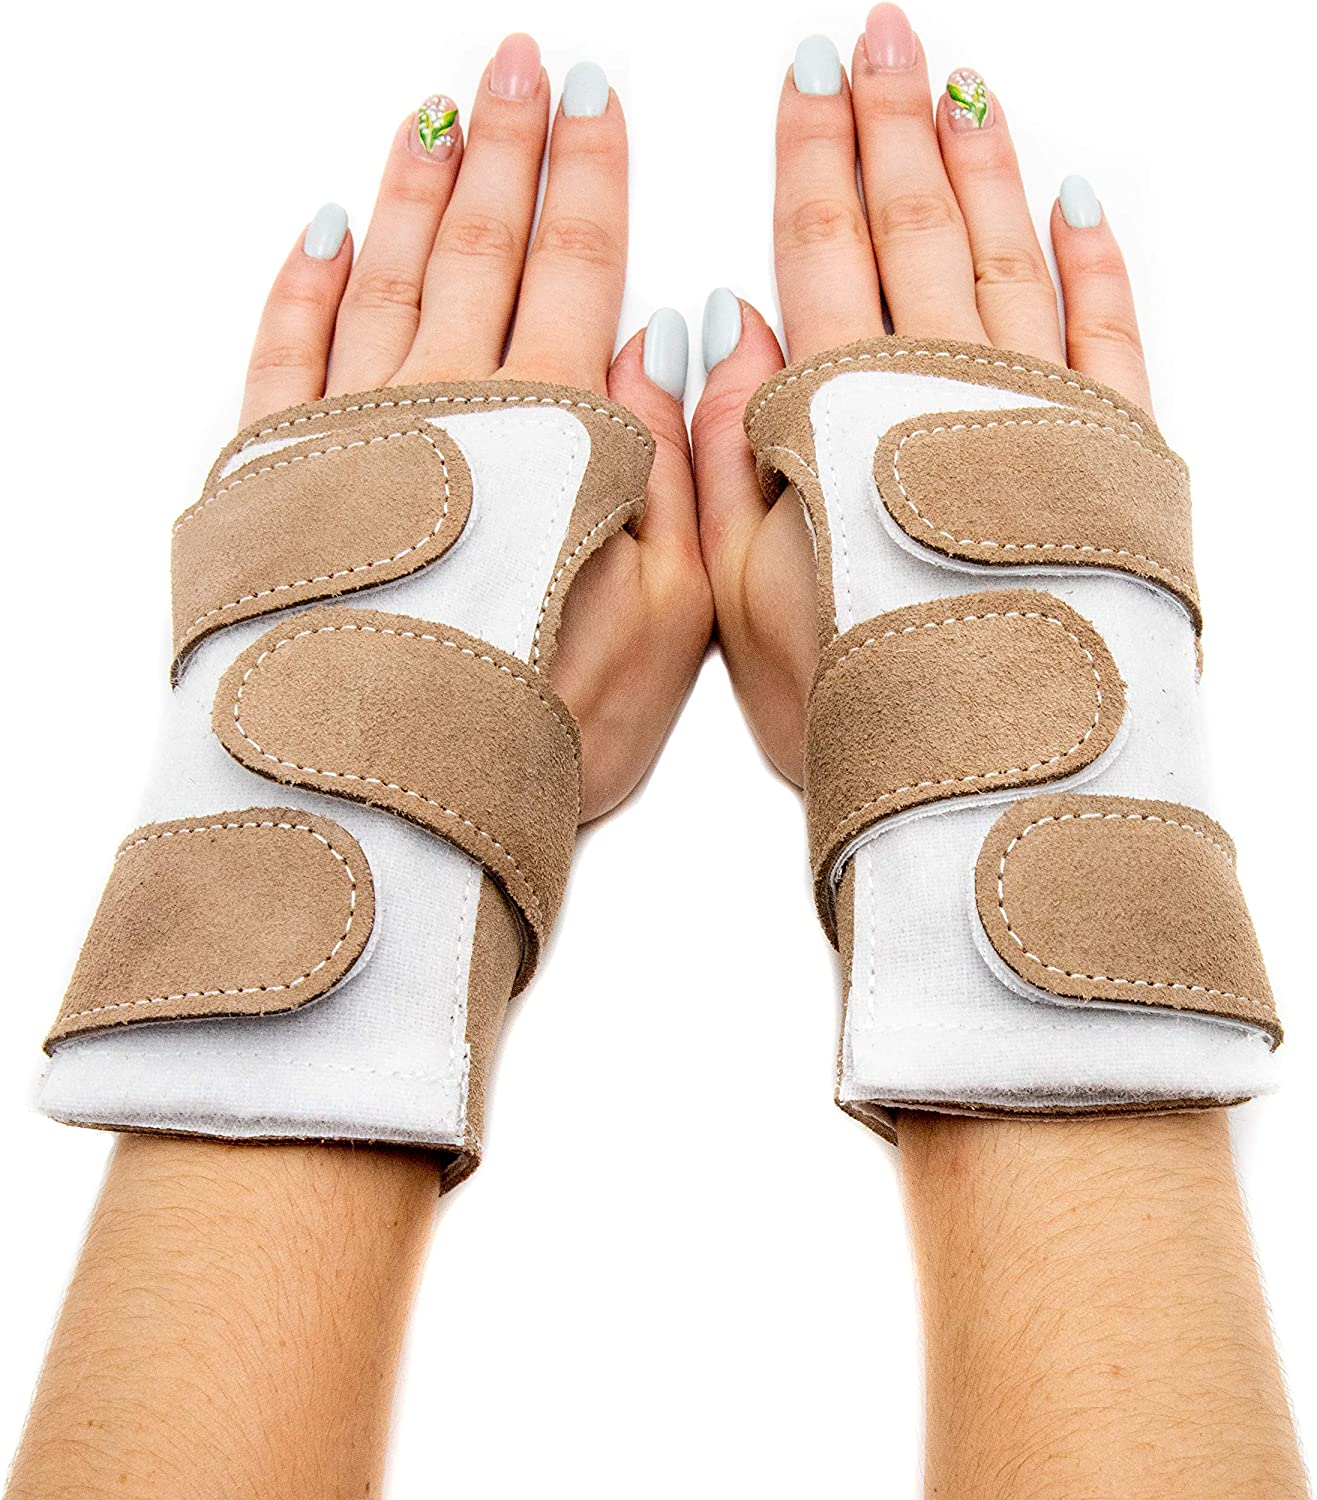 Our Wrist Support Wraps Come with a Replaceable Foam pad. Comfortable /& Low Profile Injury Prevention Panda Paws Gymnastics Wrist Support Wraps Wrist Support Wraps